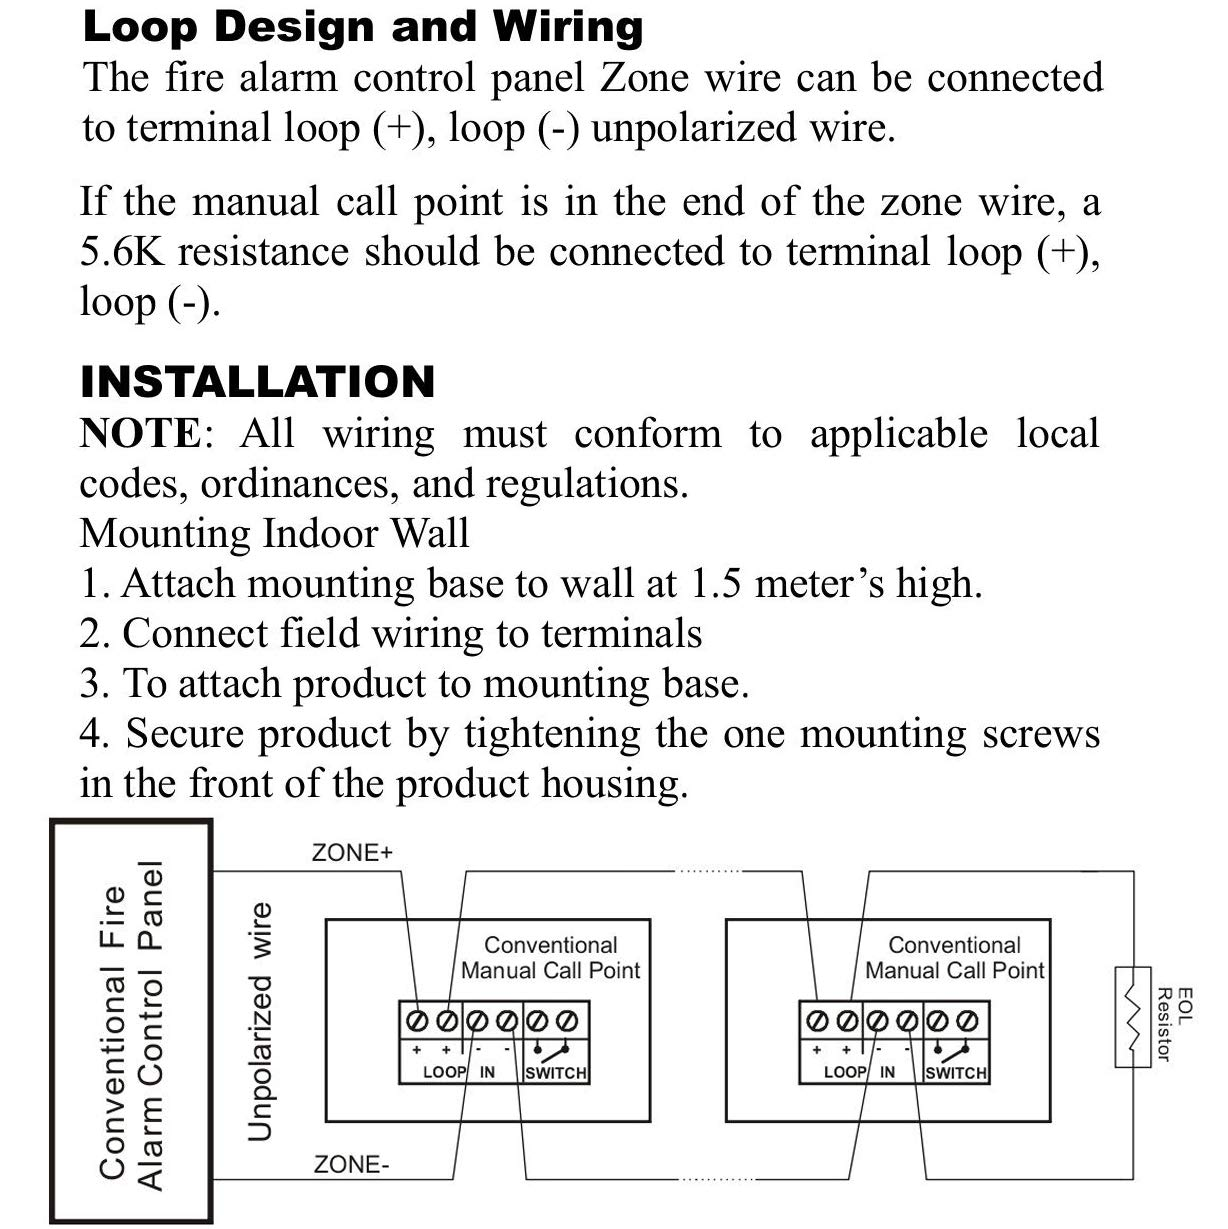 Uhppote Wired 9 28vdc Conventional Manual Call Point Signaling Line Circuit Wiring Firelite Alarms Fire Reset Push In Pull Down Emergency Alarm Station Dual Action Home Improvement